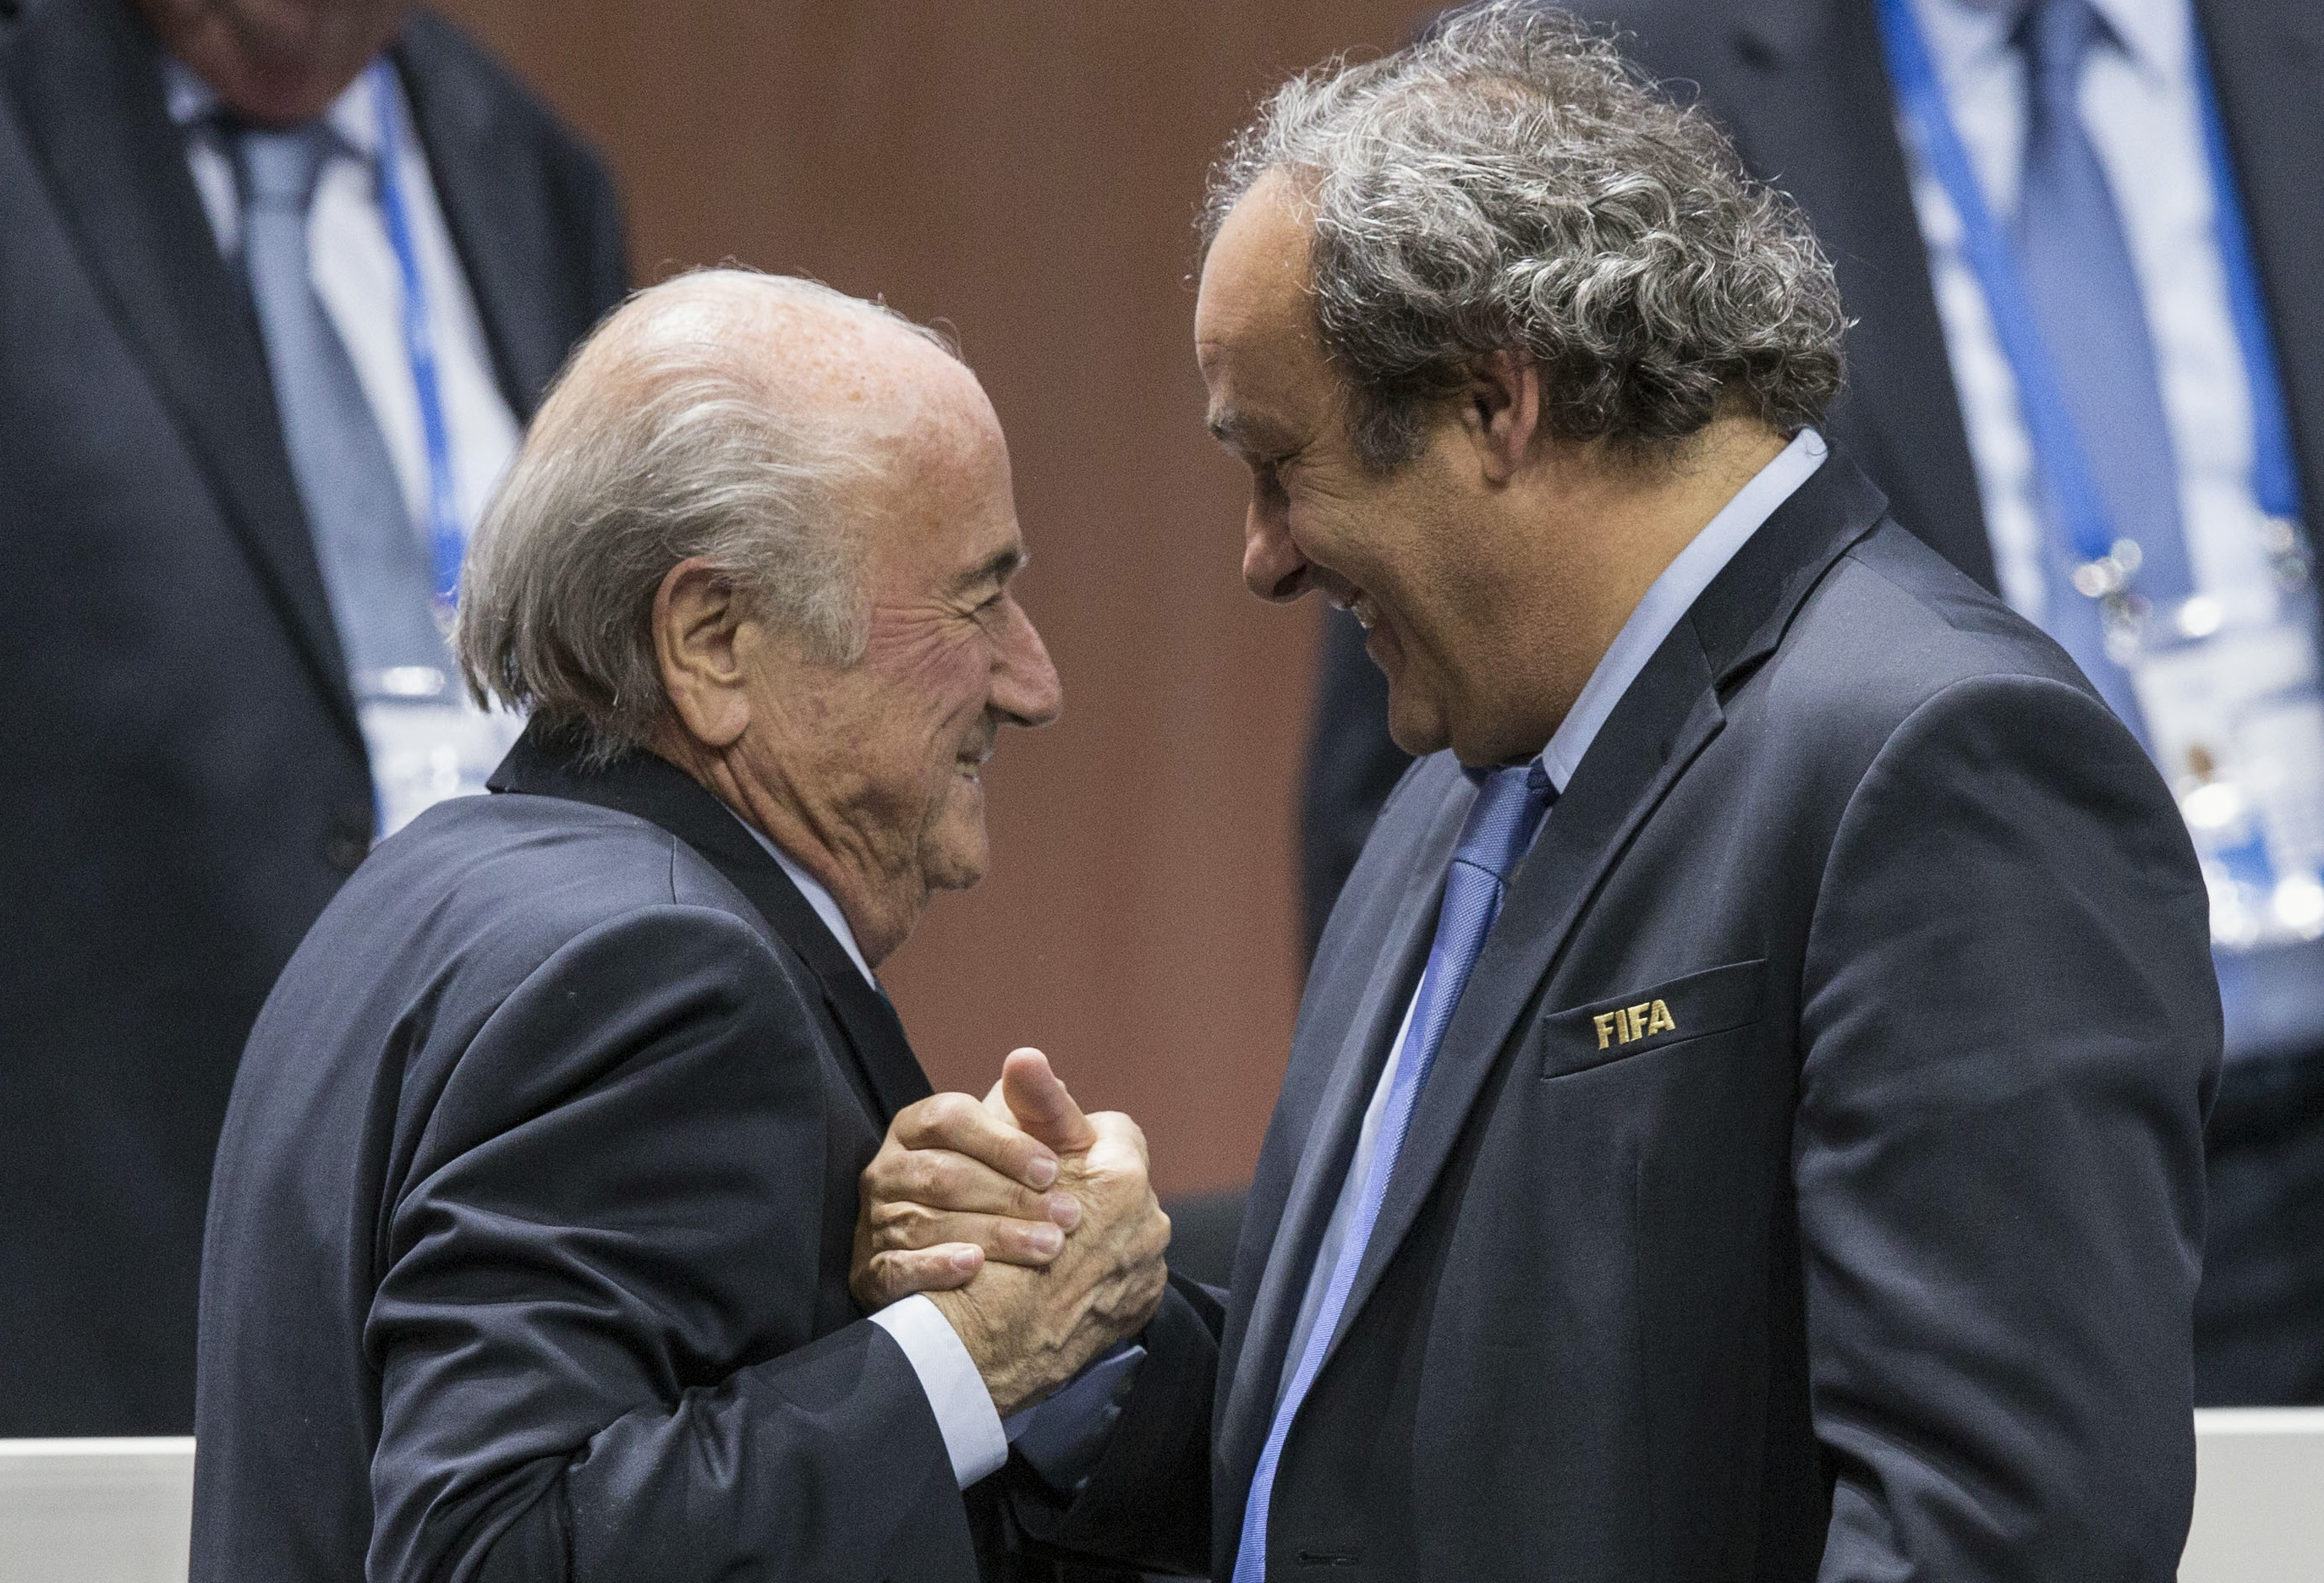 FILE - In this Friday, May 29, 2015 file photo, FIFA president Sepp Blatter after his election as President, left, is greeted by UEFA President Michel Platini, right, at the Hallenstadion in Zurich, Switzerland. Photo: Reuters